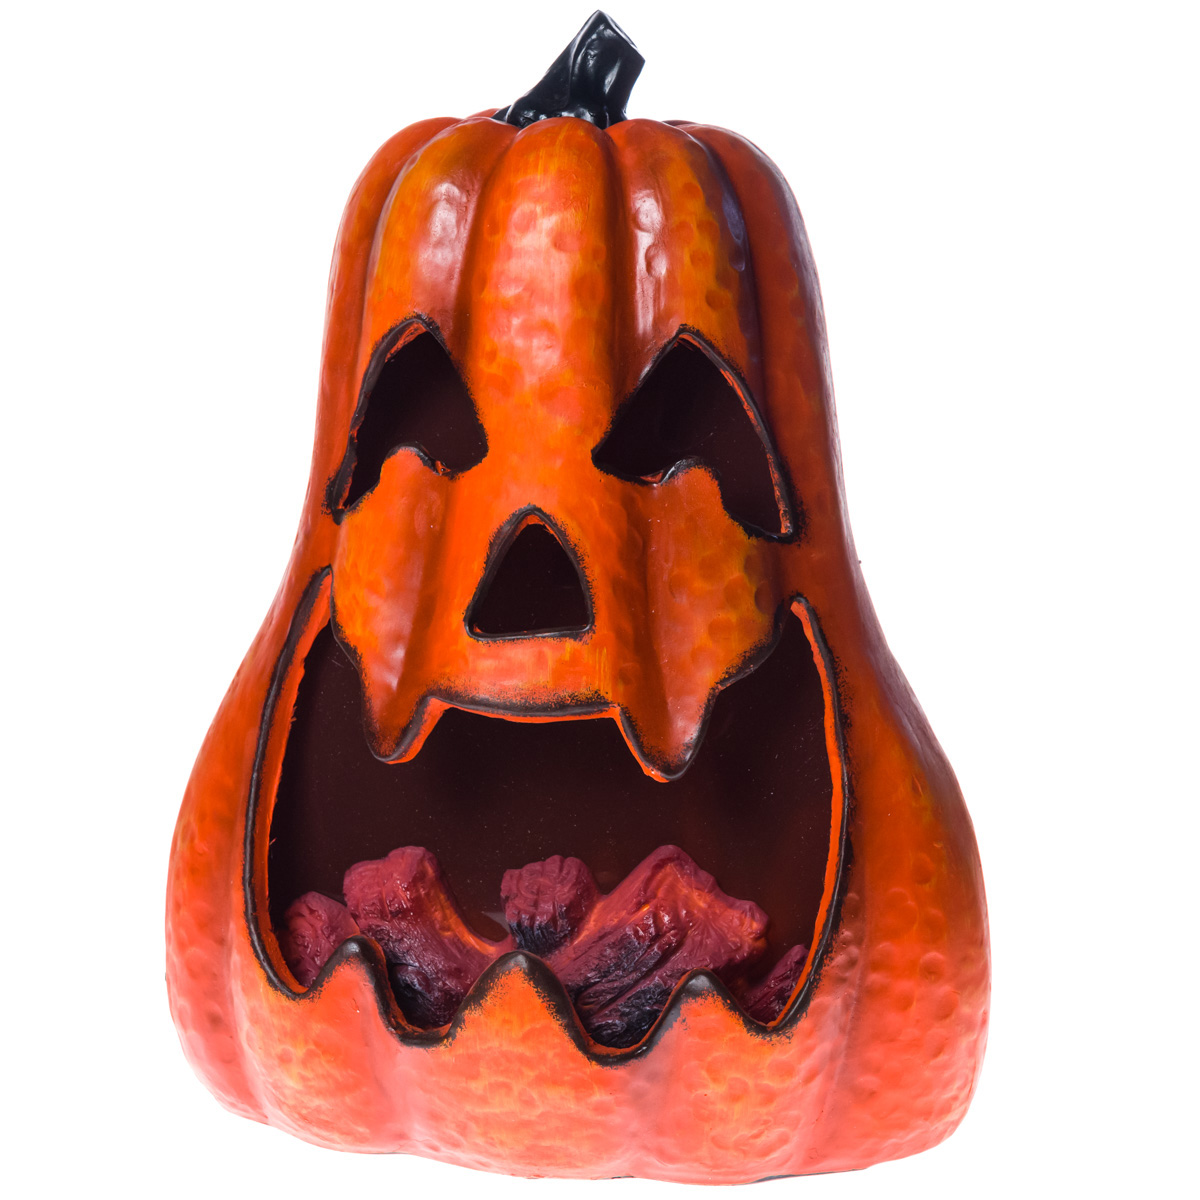 light up pumpkin with animated fire effect collections halloween cracker barrel old country store